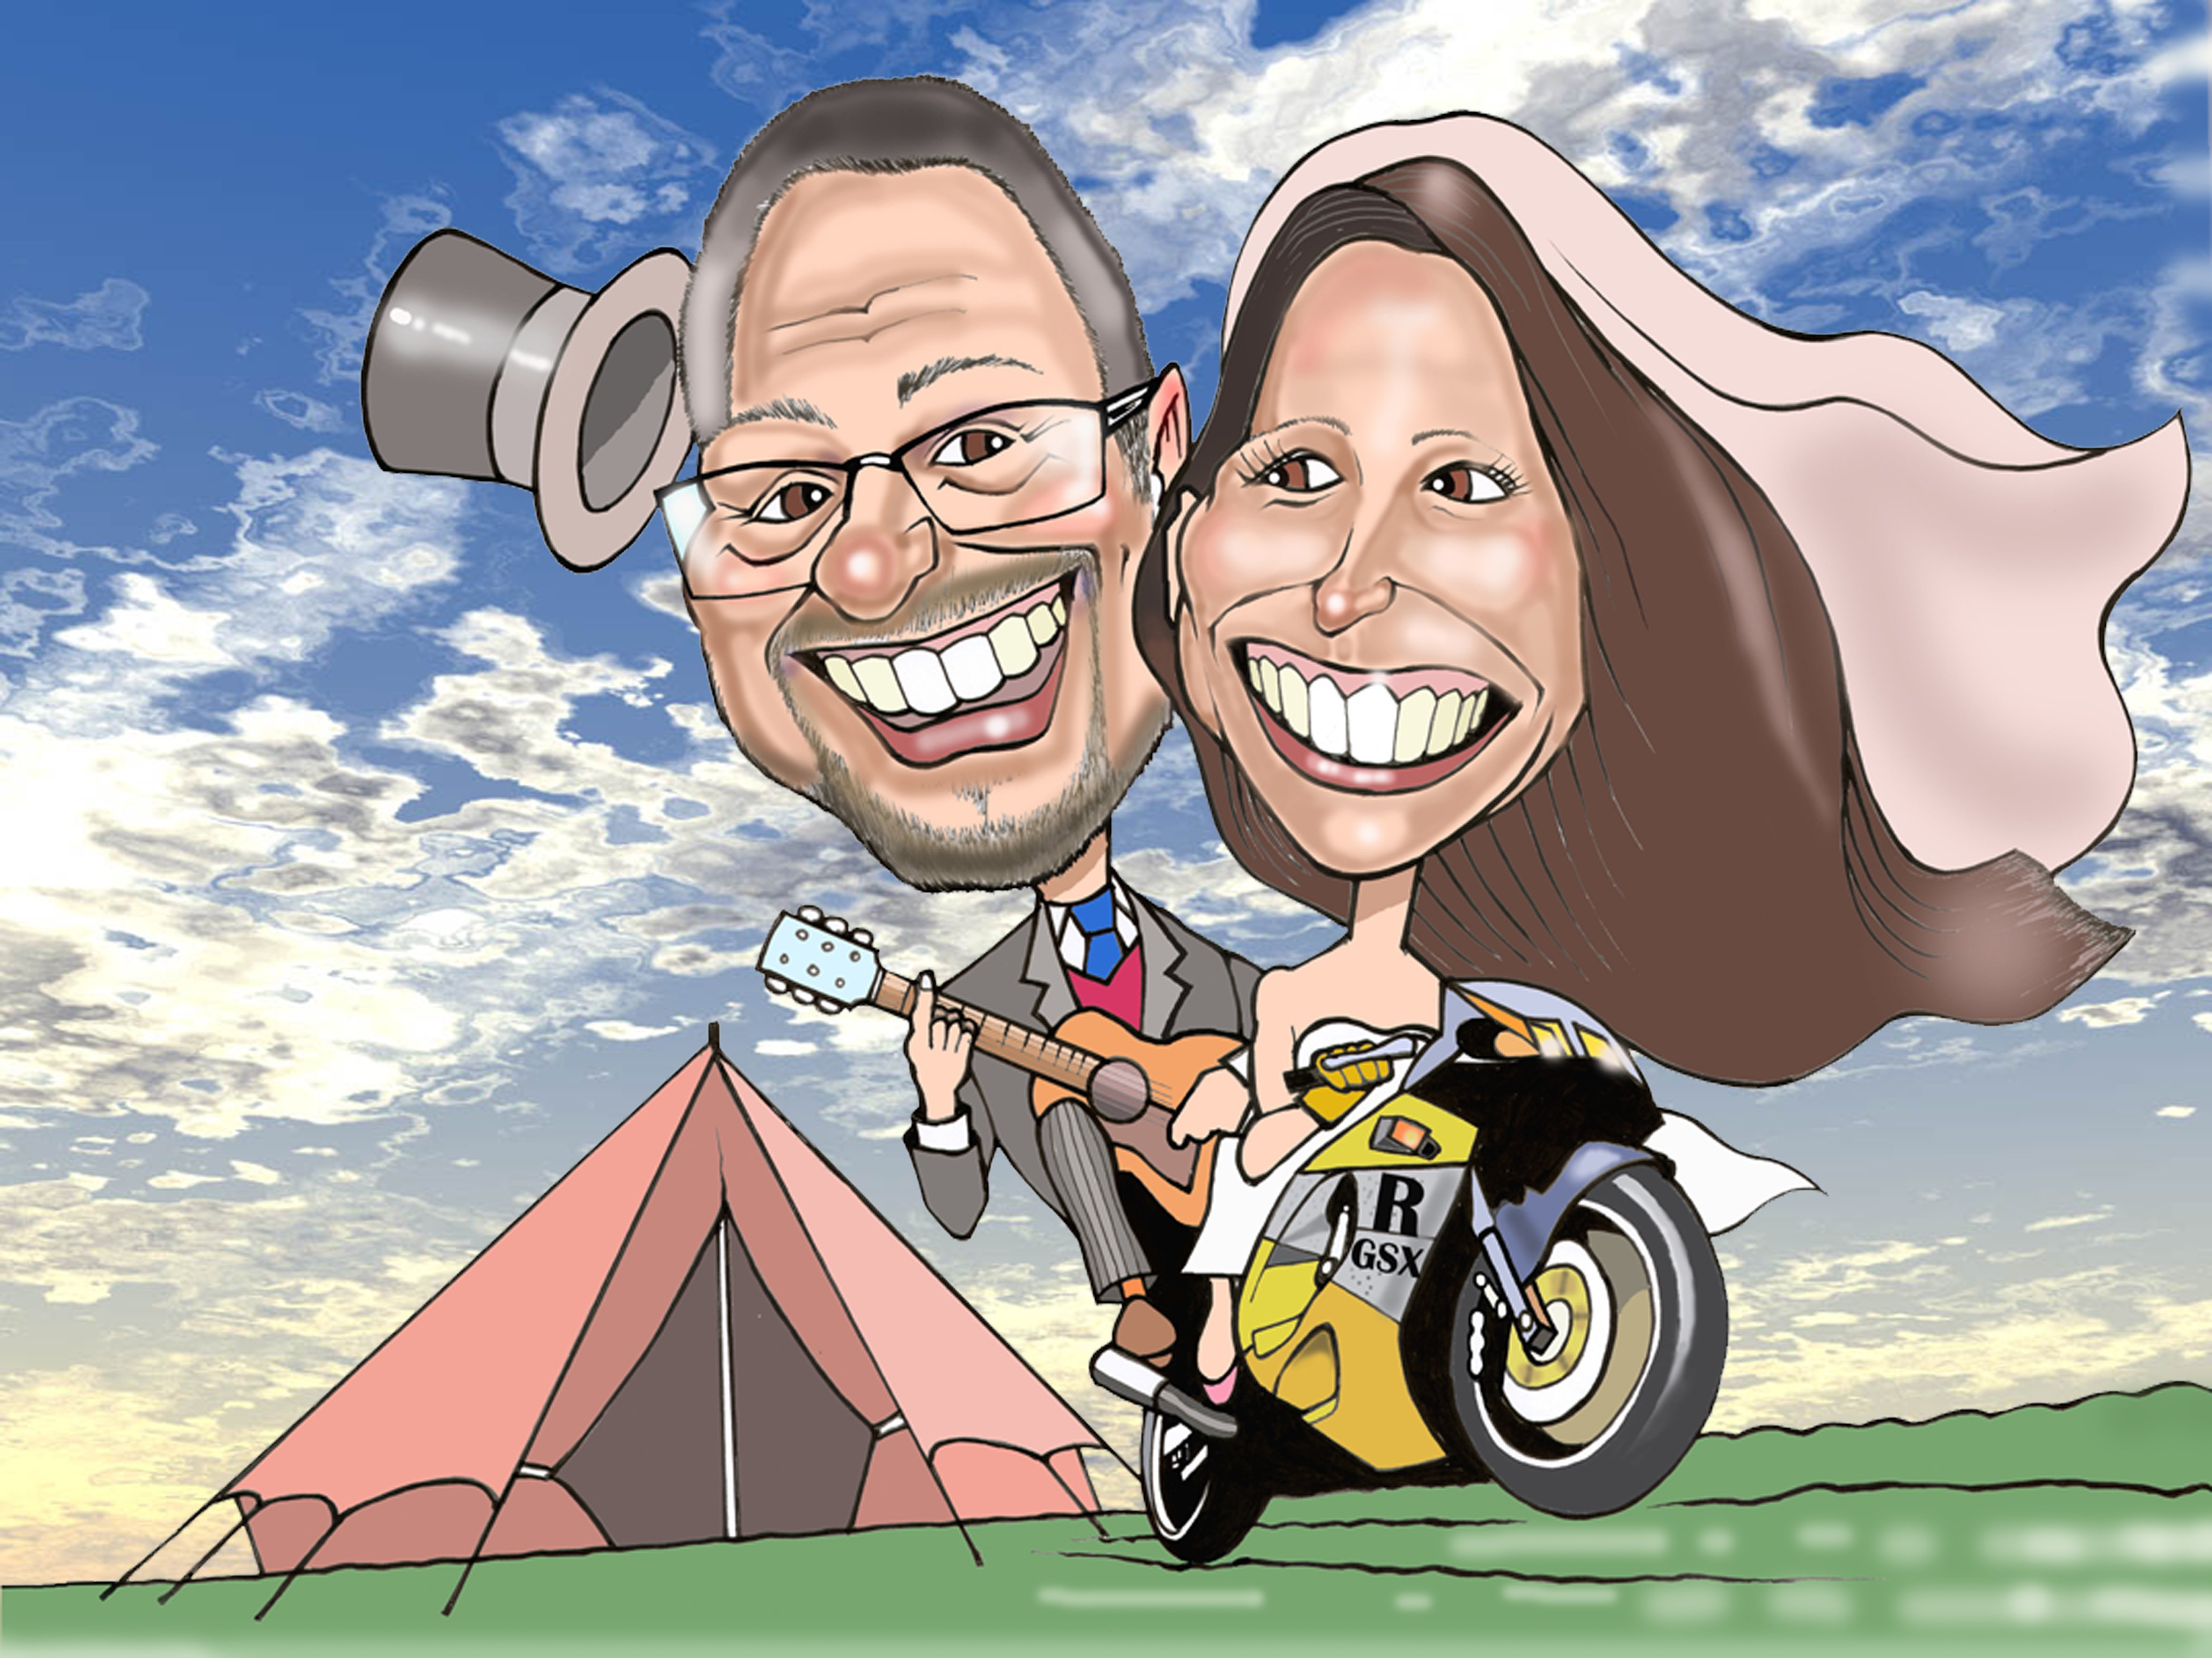 Caricature Projects